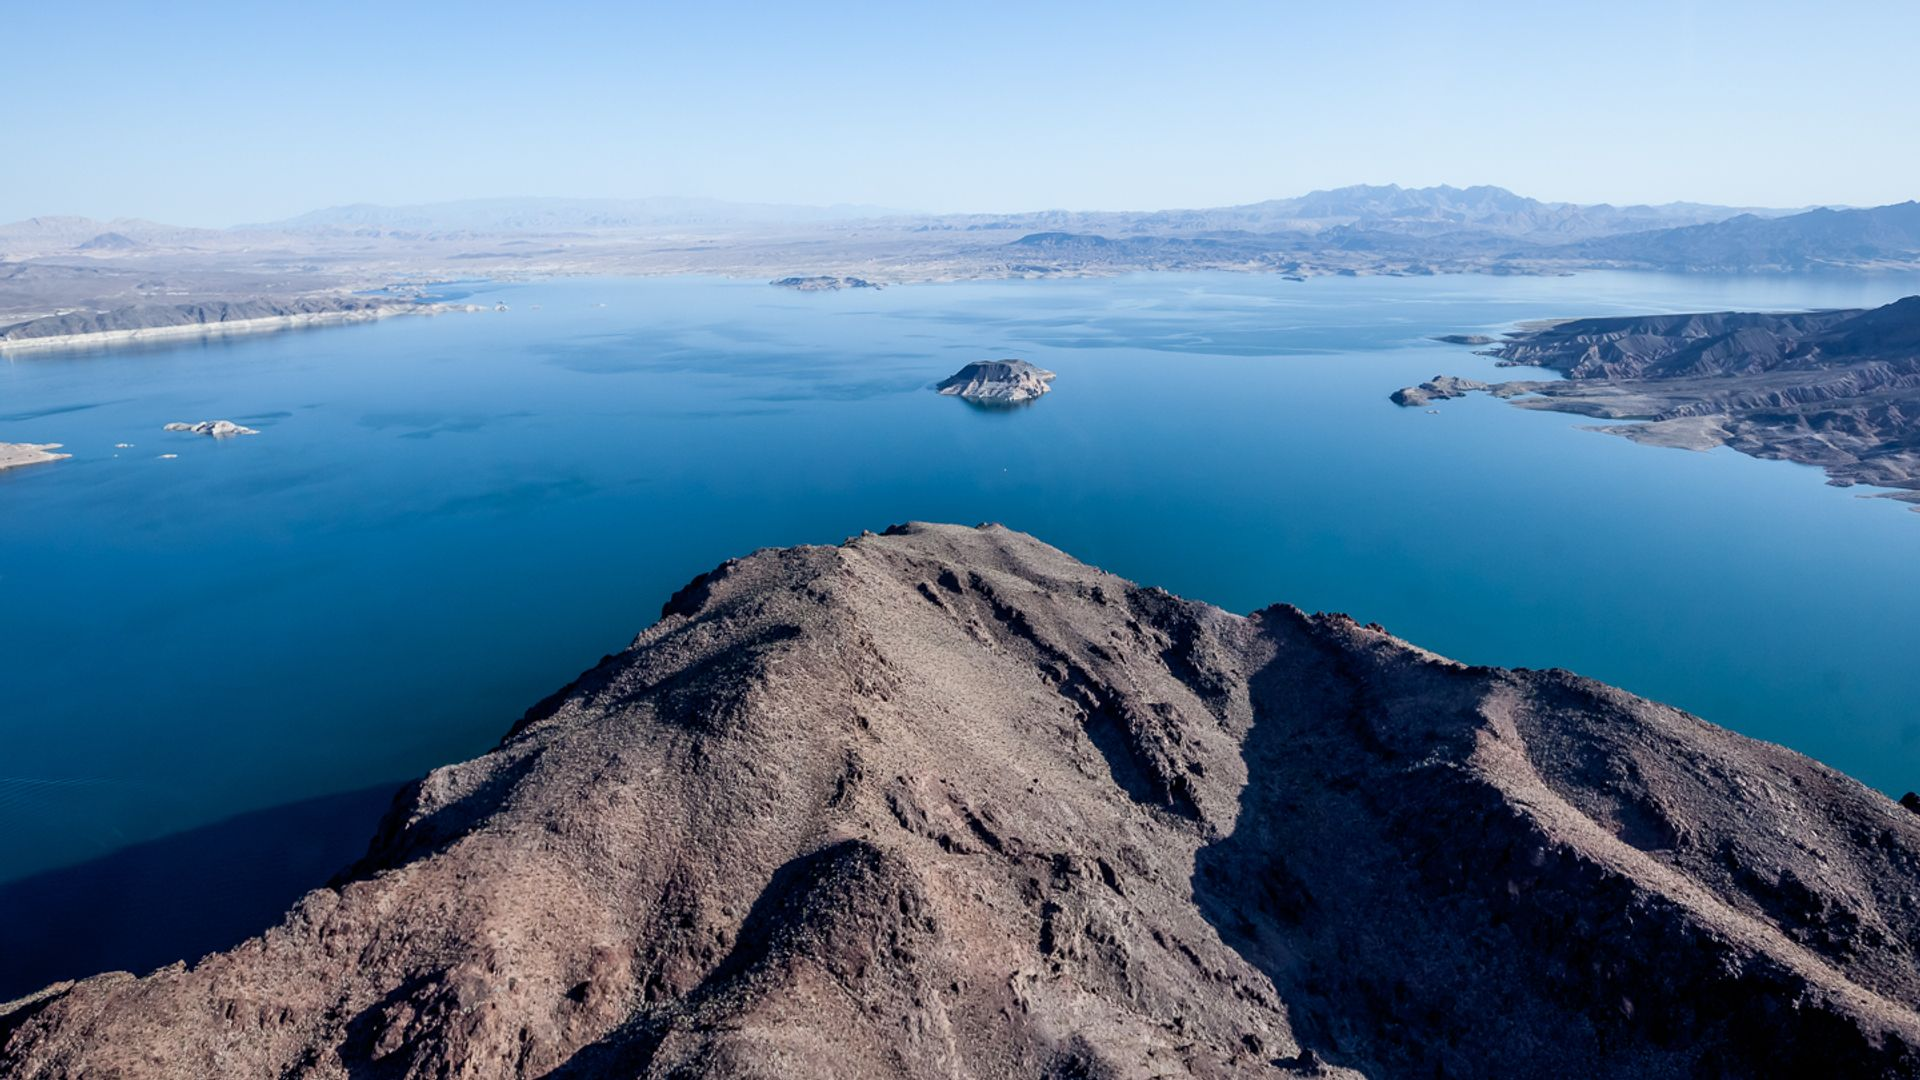 Lake Mead from the air